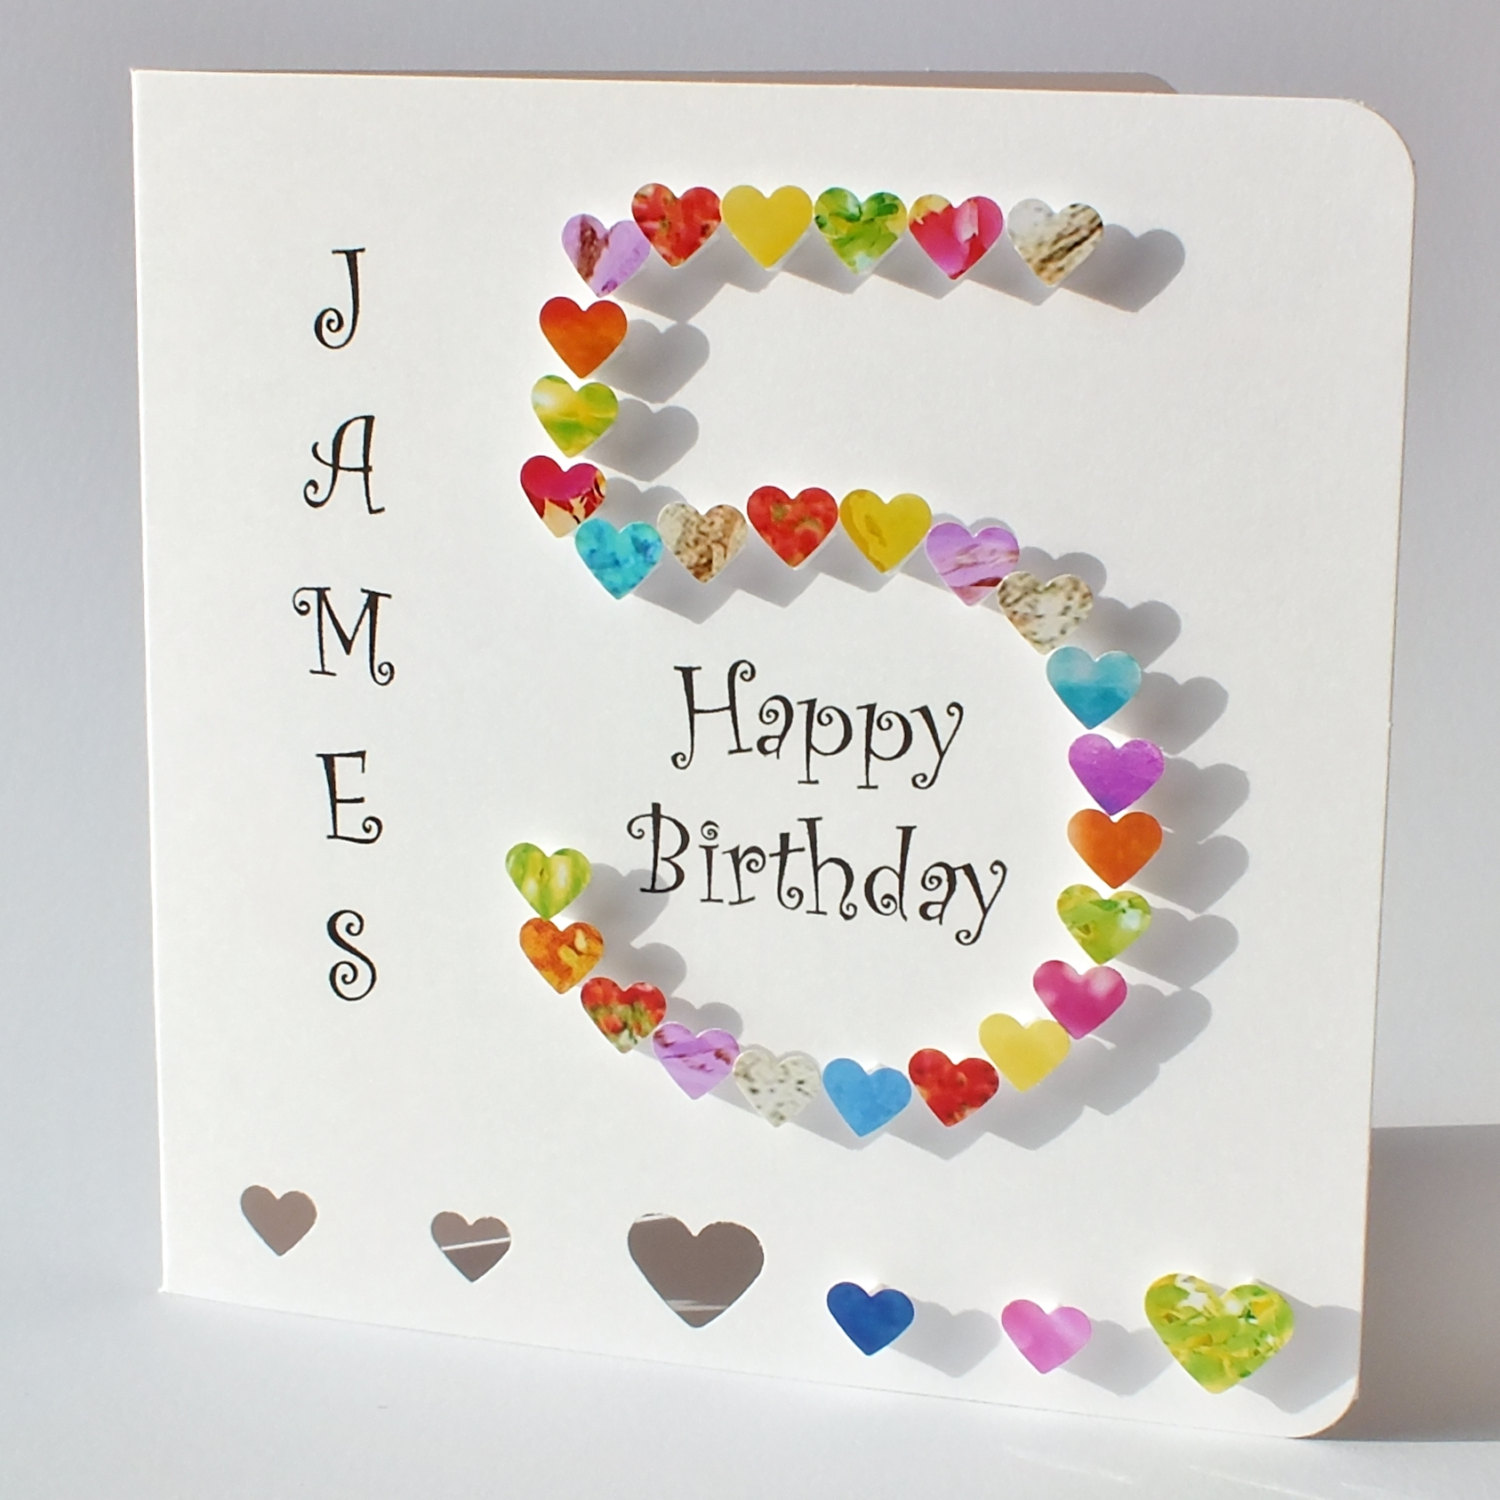 5 year old boy birthday card ideas ; 5th-birthday-card-ideas-32587c013fa25977d8f124602ae71c61